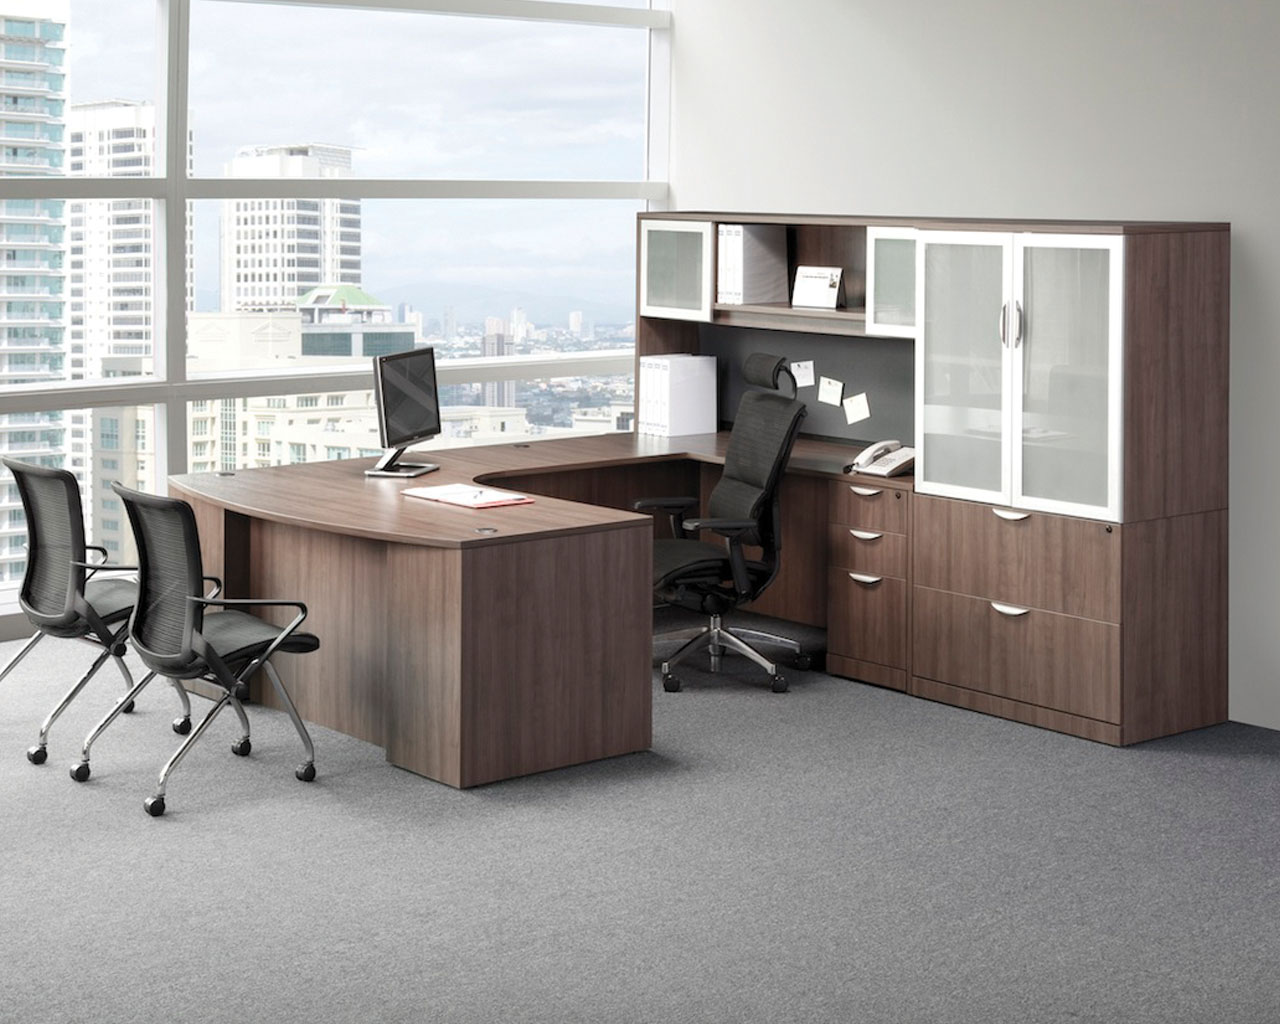 Classic Plus Bowfront Desk with Box/Box/File Pedestal and Optional Hutch & Storage Cabinet